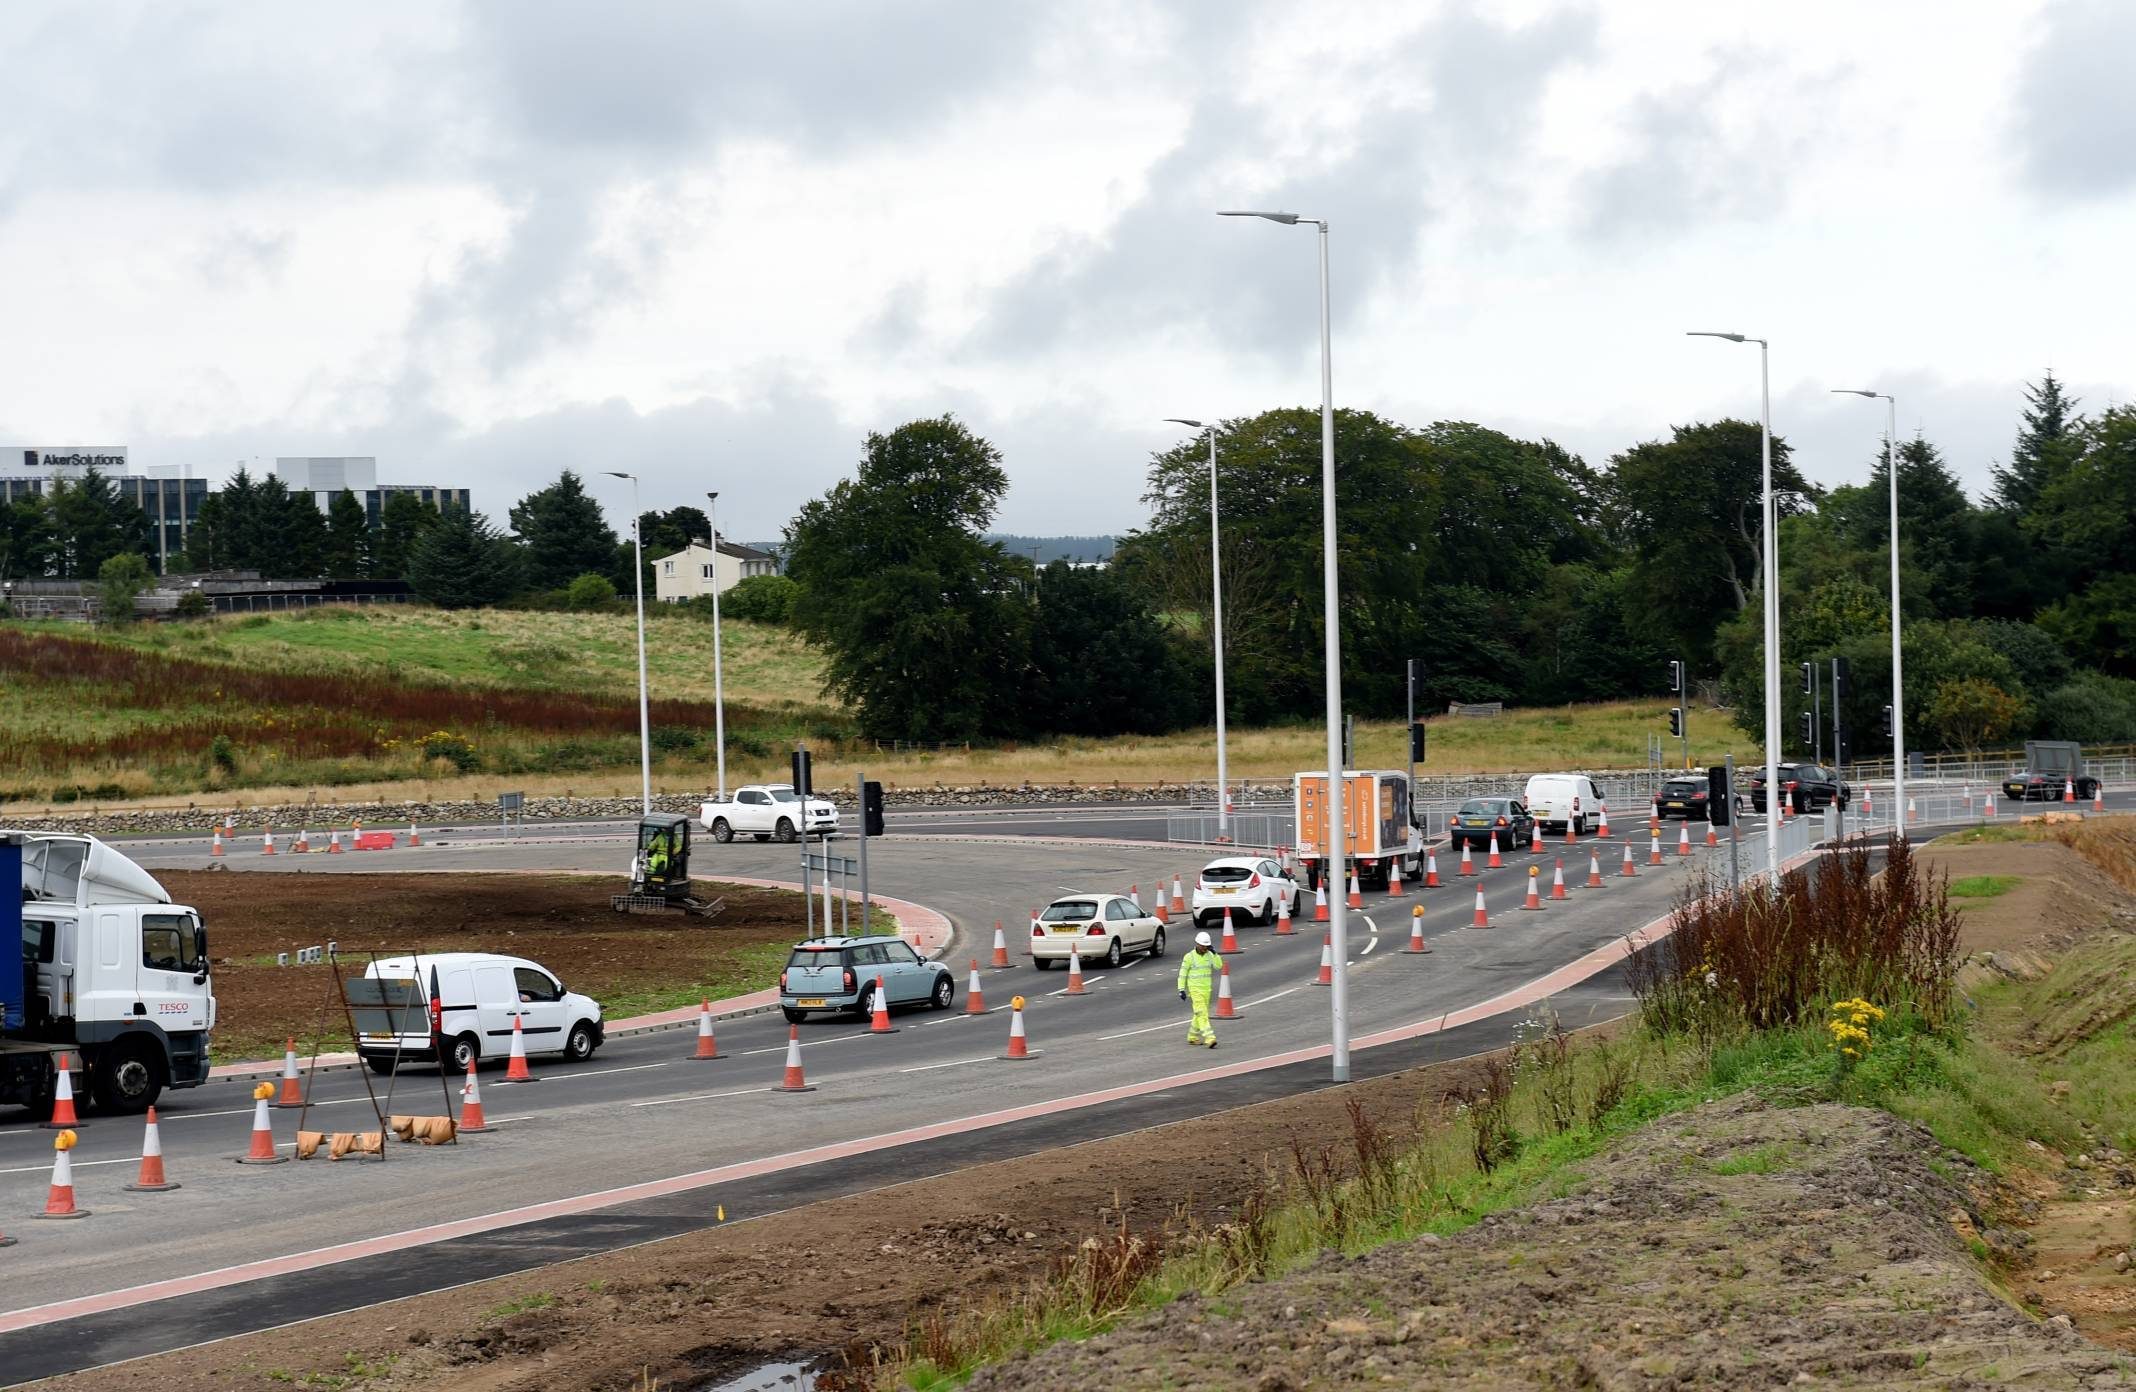 The Craibstone Roundabout which is part of the first section of the AWPR.